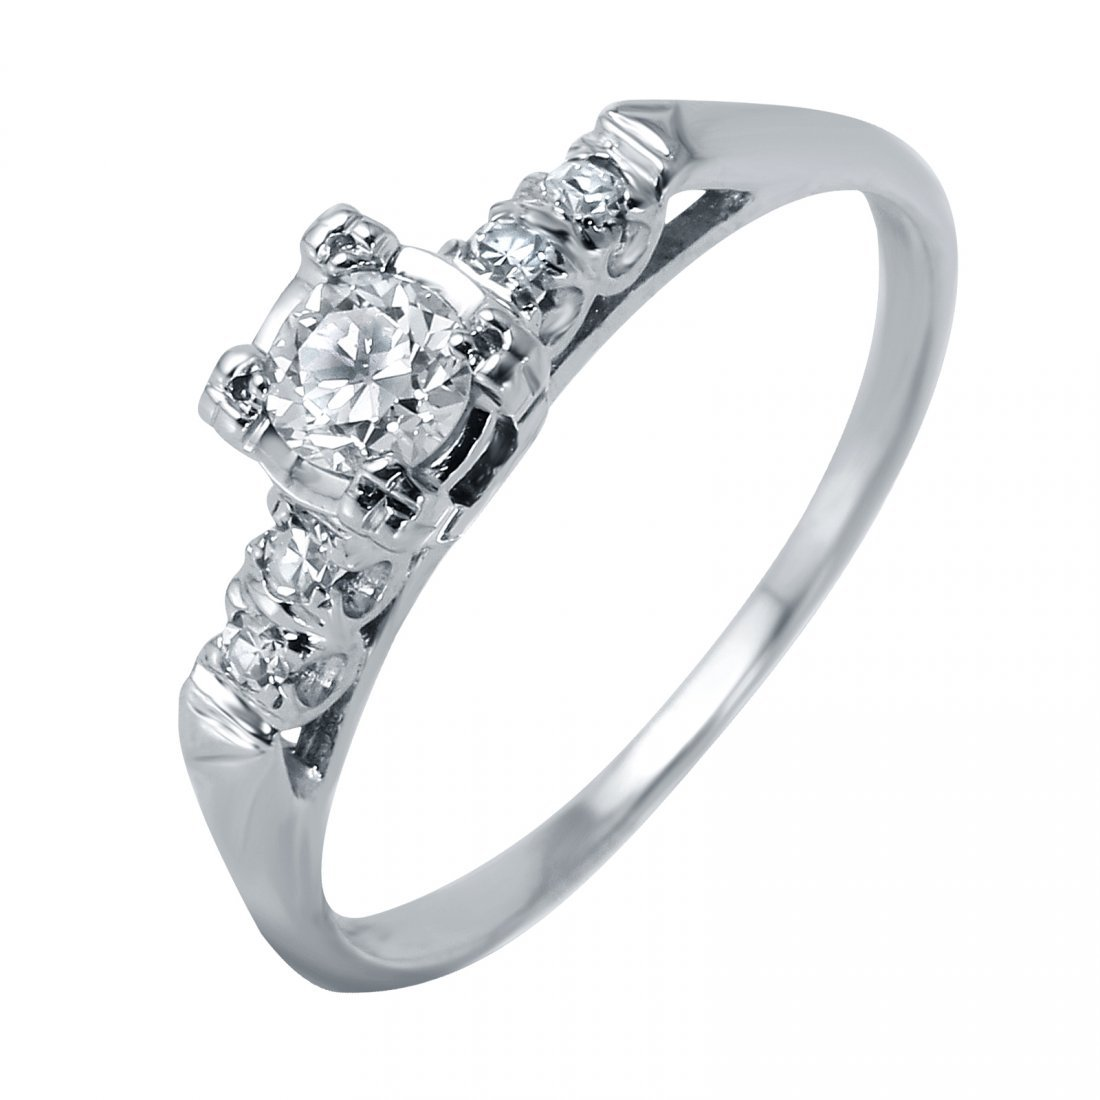 14KT White Gold Vintage Style Diamond Engagement Ring